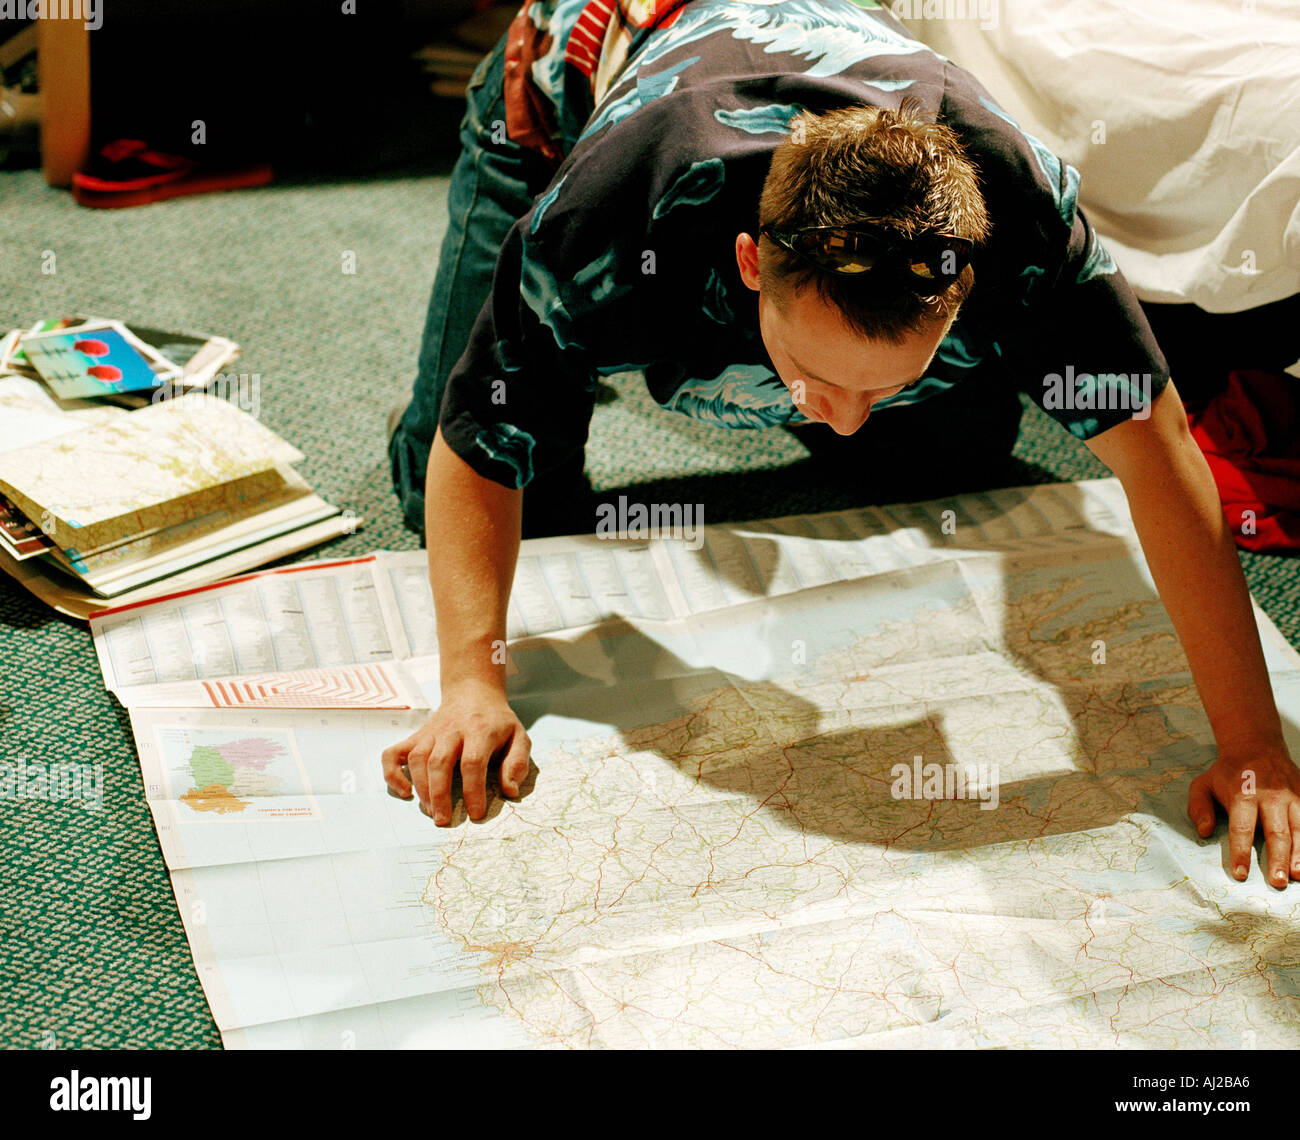 young male in bedroom leaning over map - Stock Image